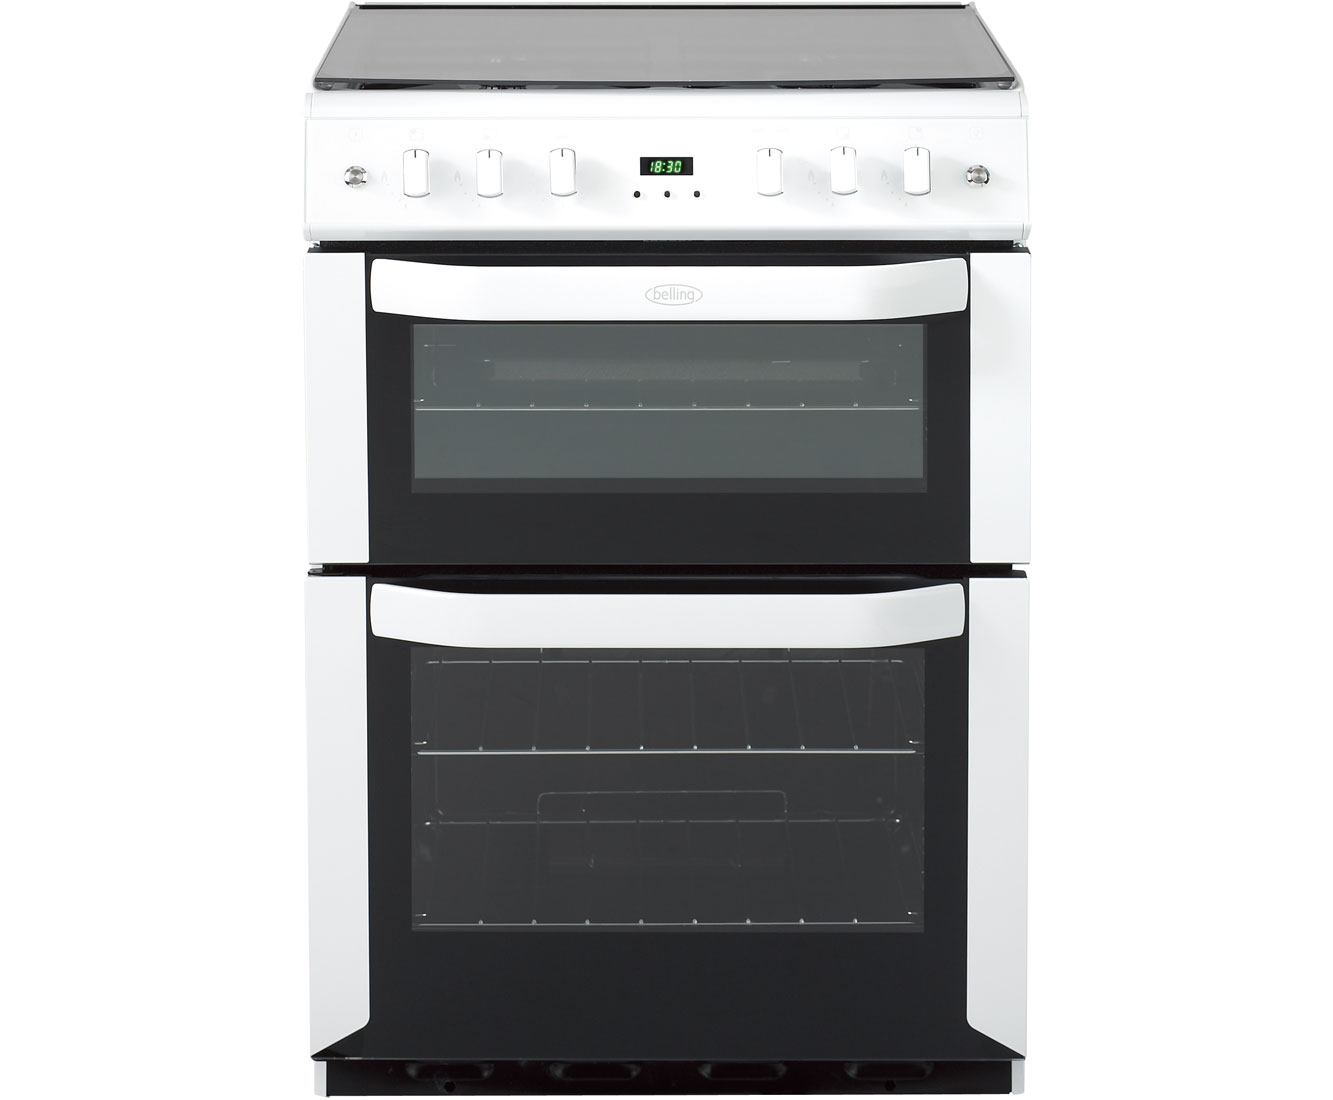 Belling FSG60DOP Gas Cooker with Electric Grill - White